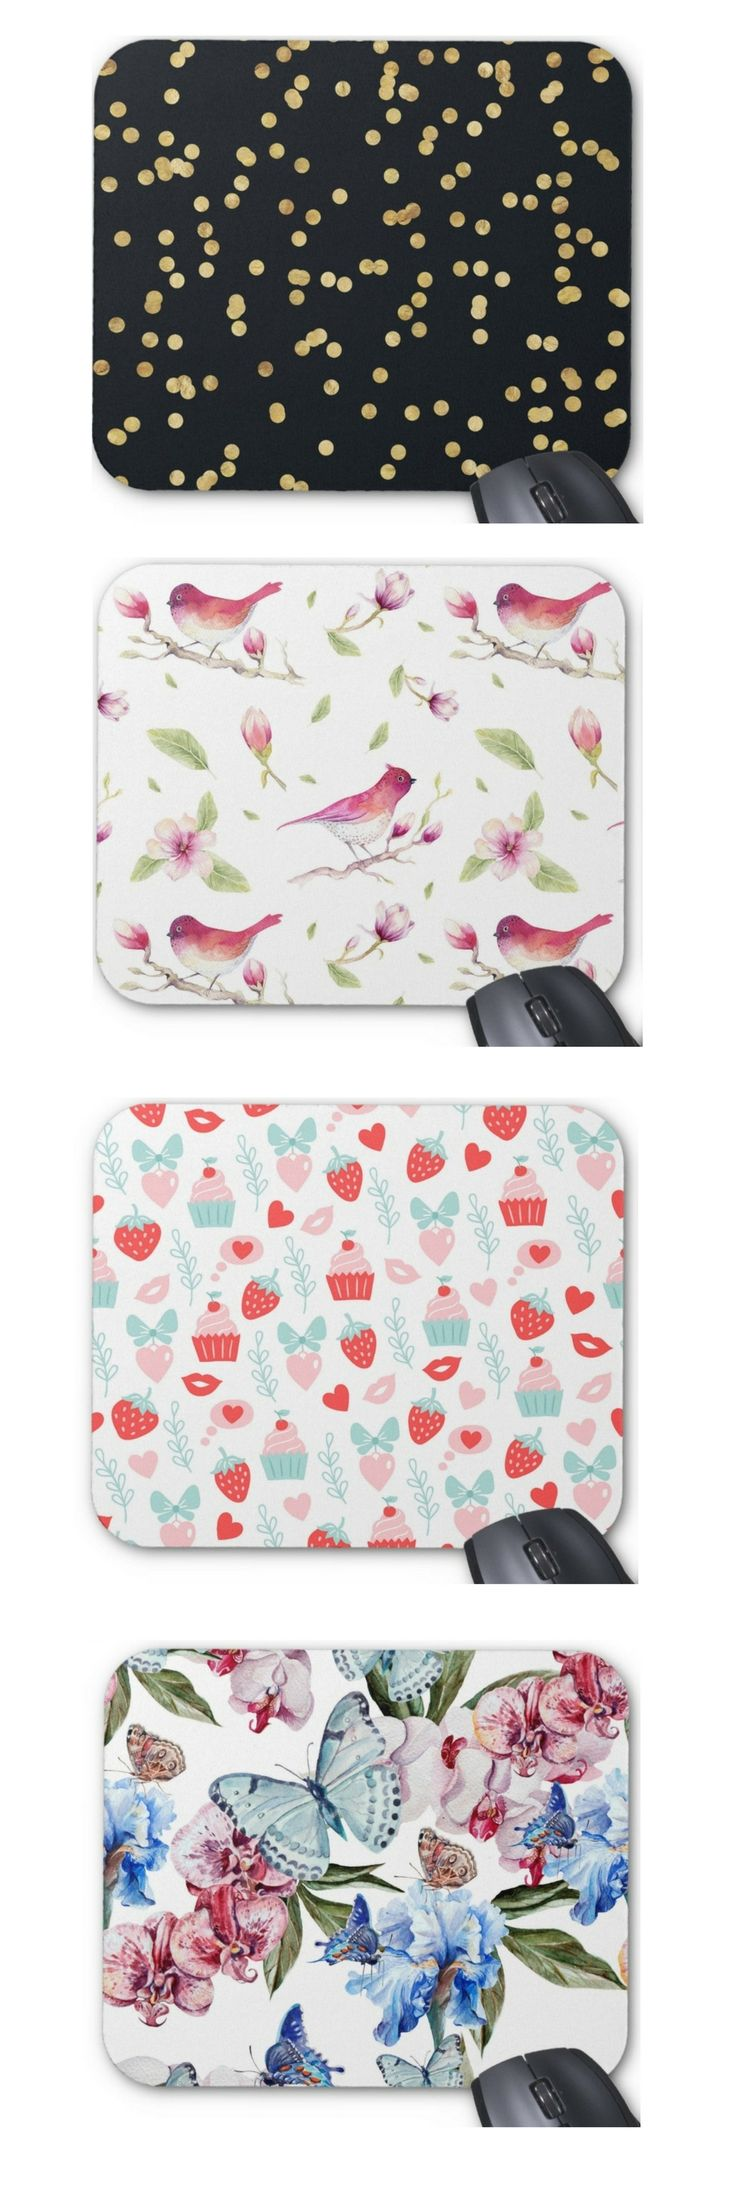 Mousepads Stylish mousepads for office | Shop from our zazzle store for more designs | office decor | office supplies